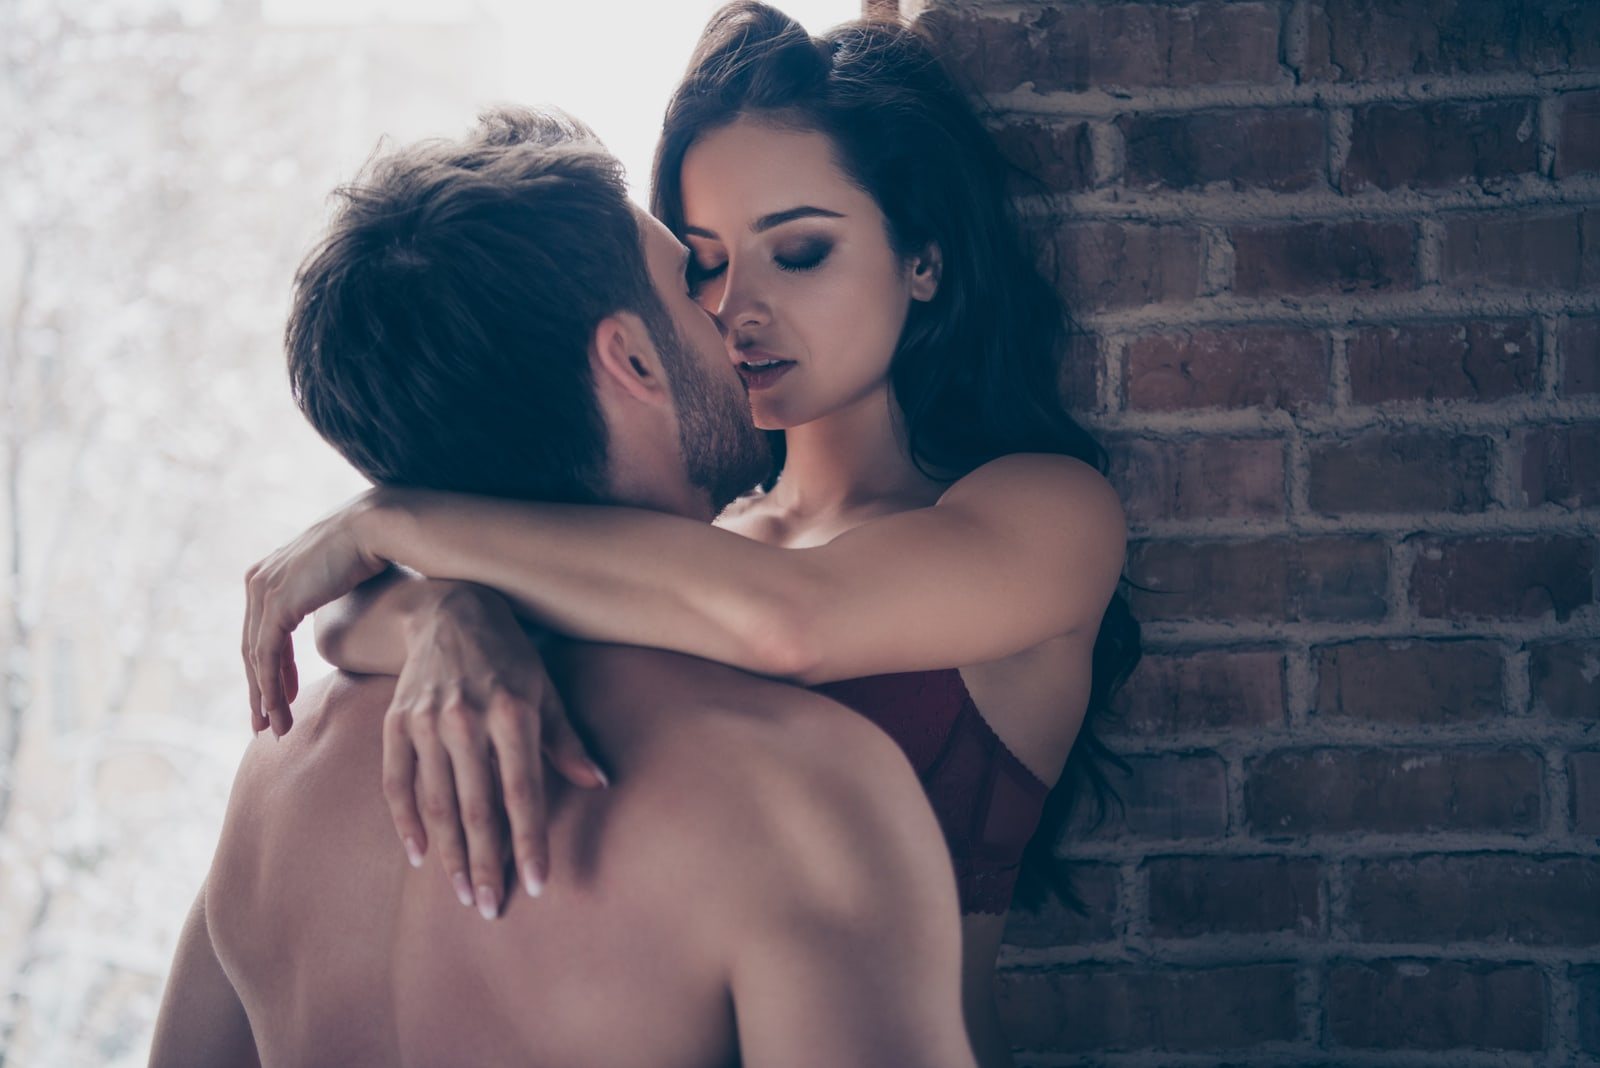 6 Sex Positions That Make You 'Get There' Easier